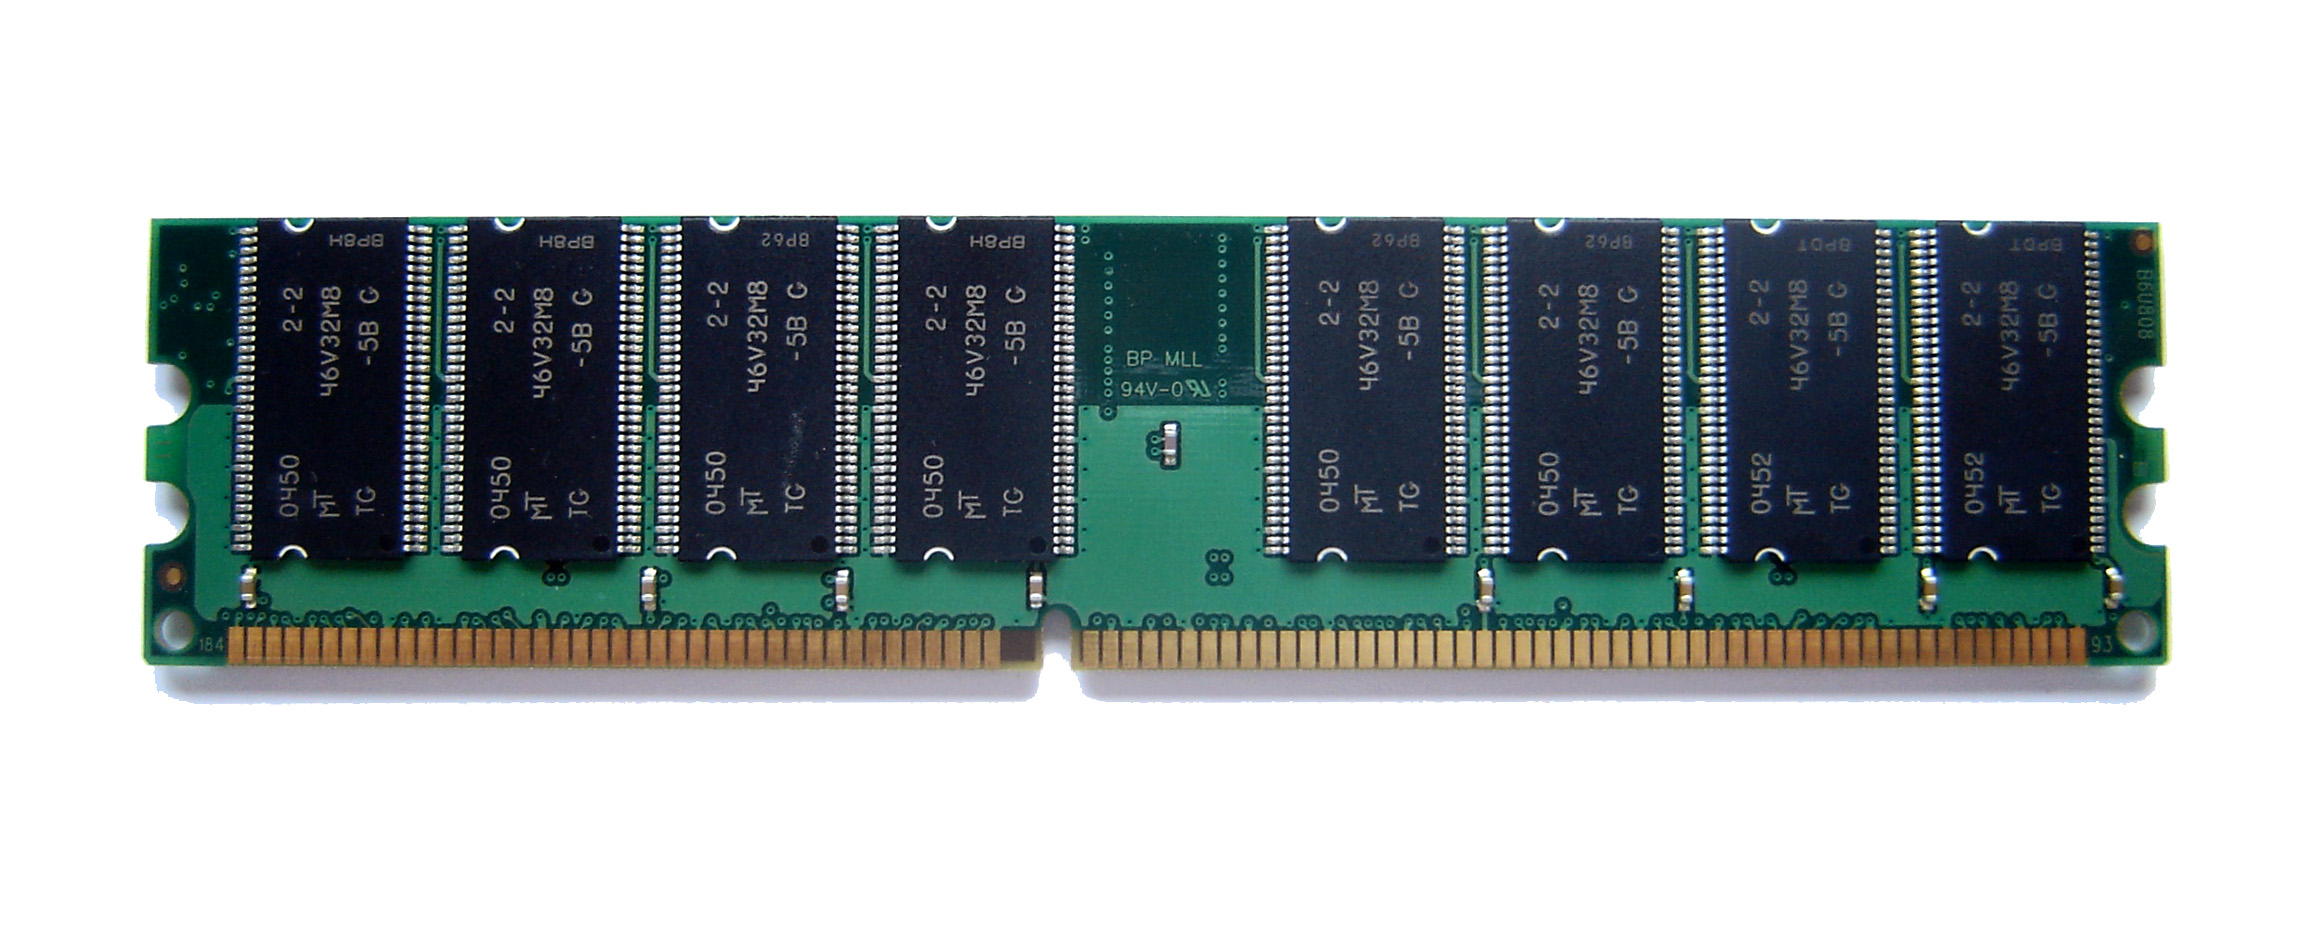 How to get valuable information from RAM